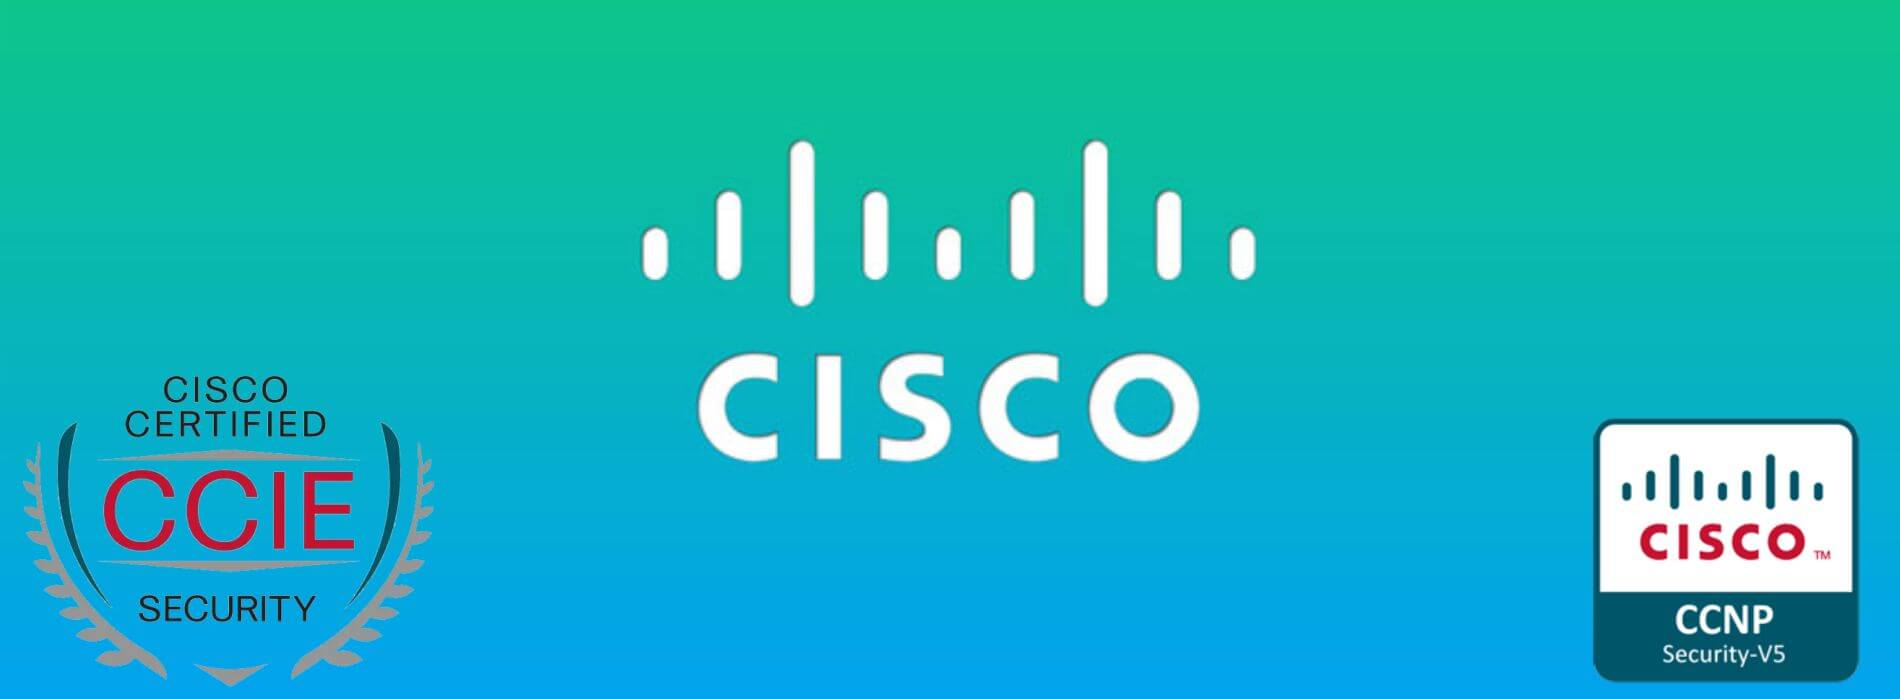 cisco ccnp security training in melbourne Cisco CCNP Security Training in Melbourne, CCNP Security Certification Cisco CCNP Security Training in Melbourne CCNP Security Certification main